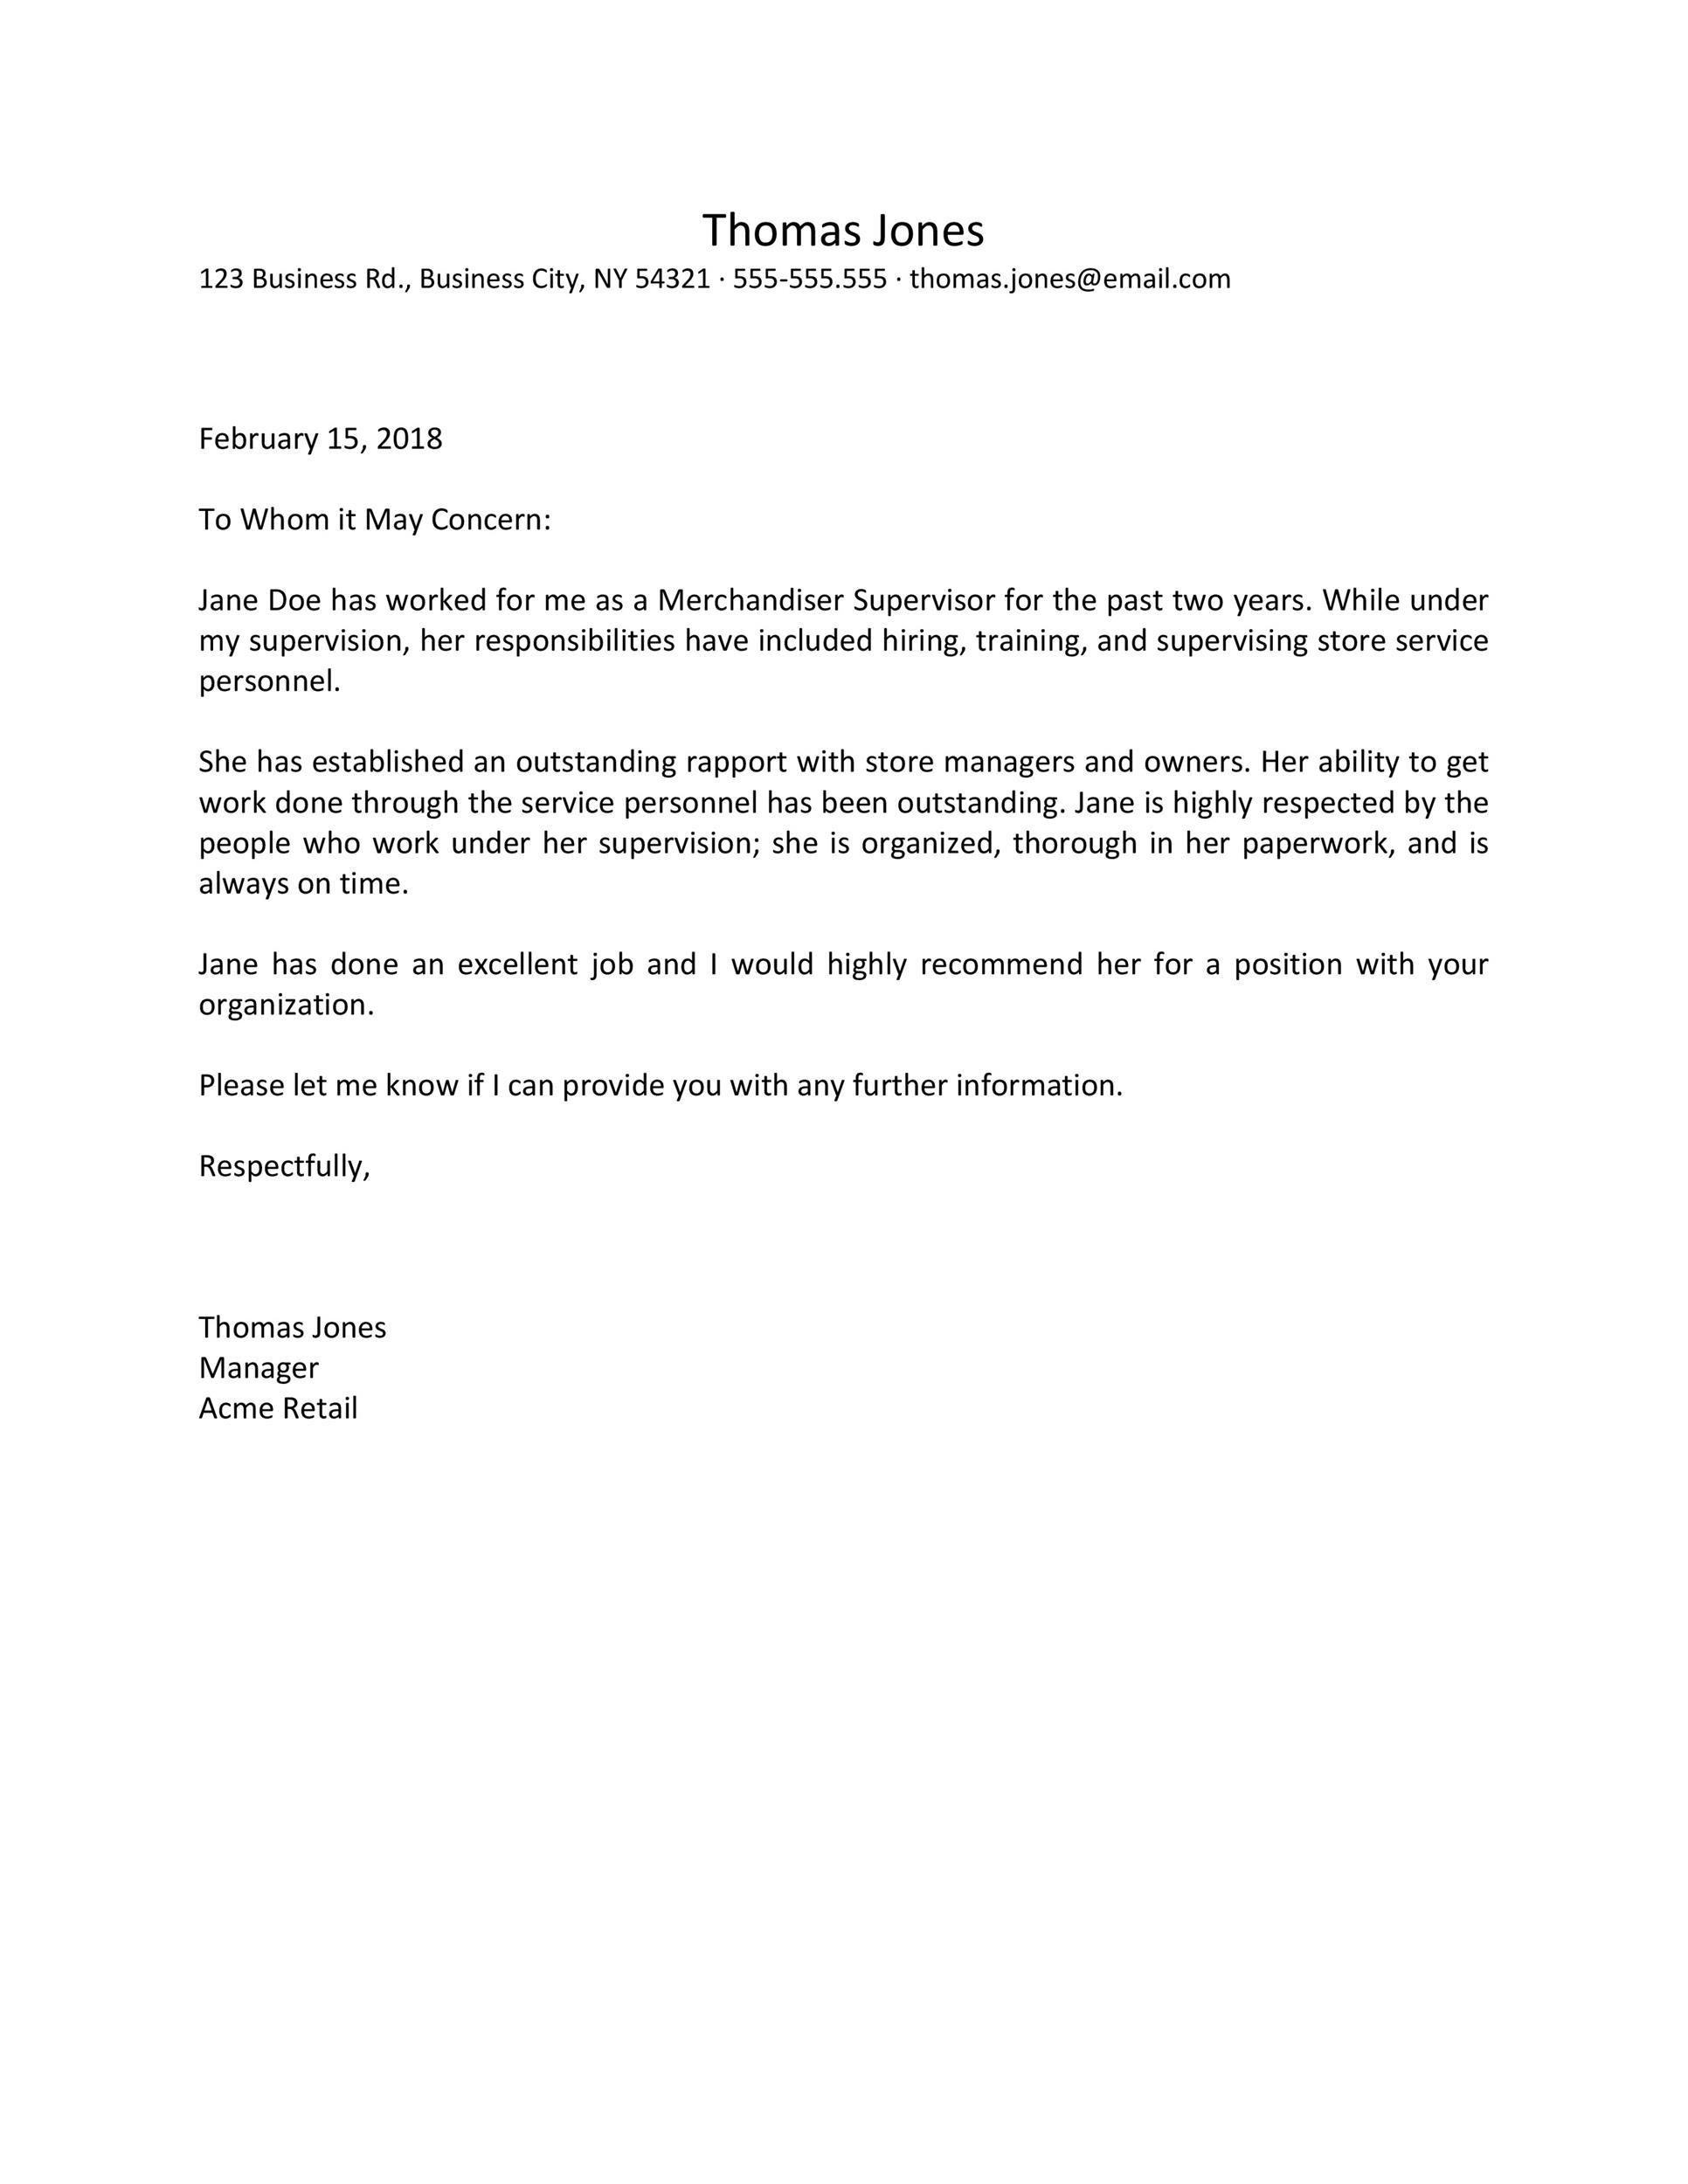 Company Recommendation Letter Sample.50 Best Recommendation Letters For Employee From Manager